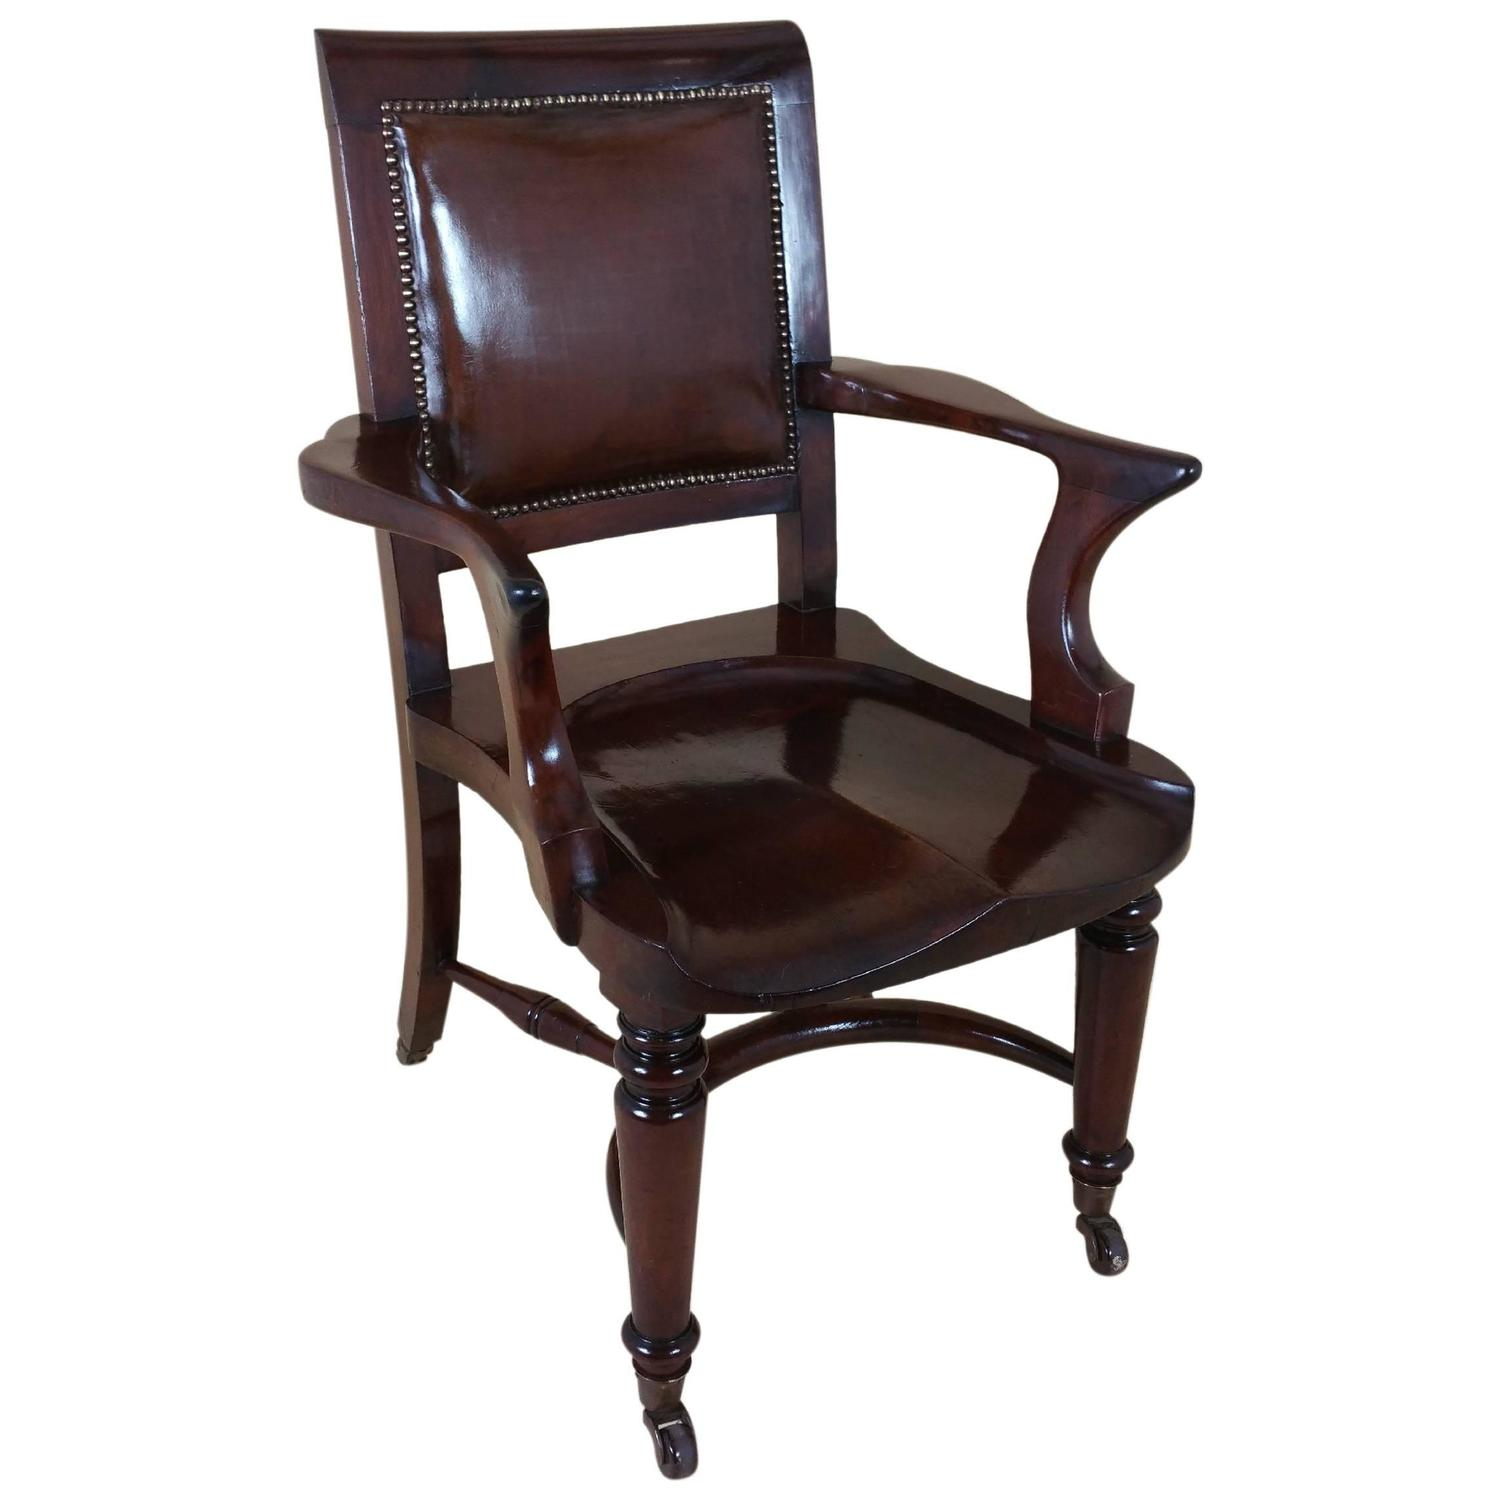 french ebonized mahogany antique desk chair with a leather seat